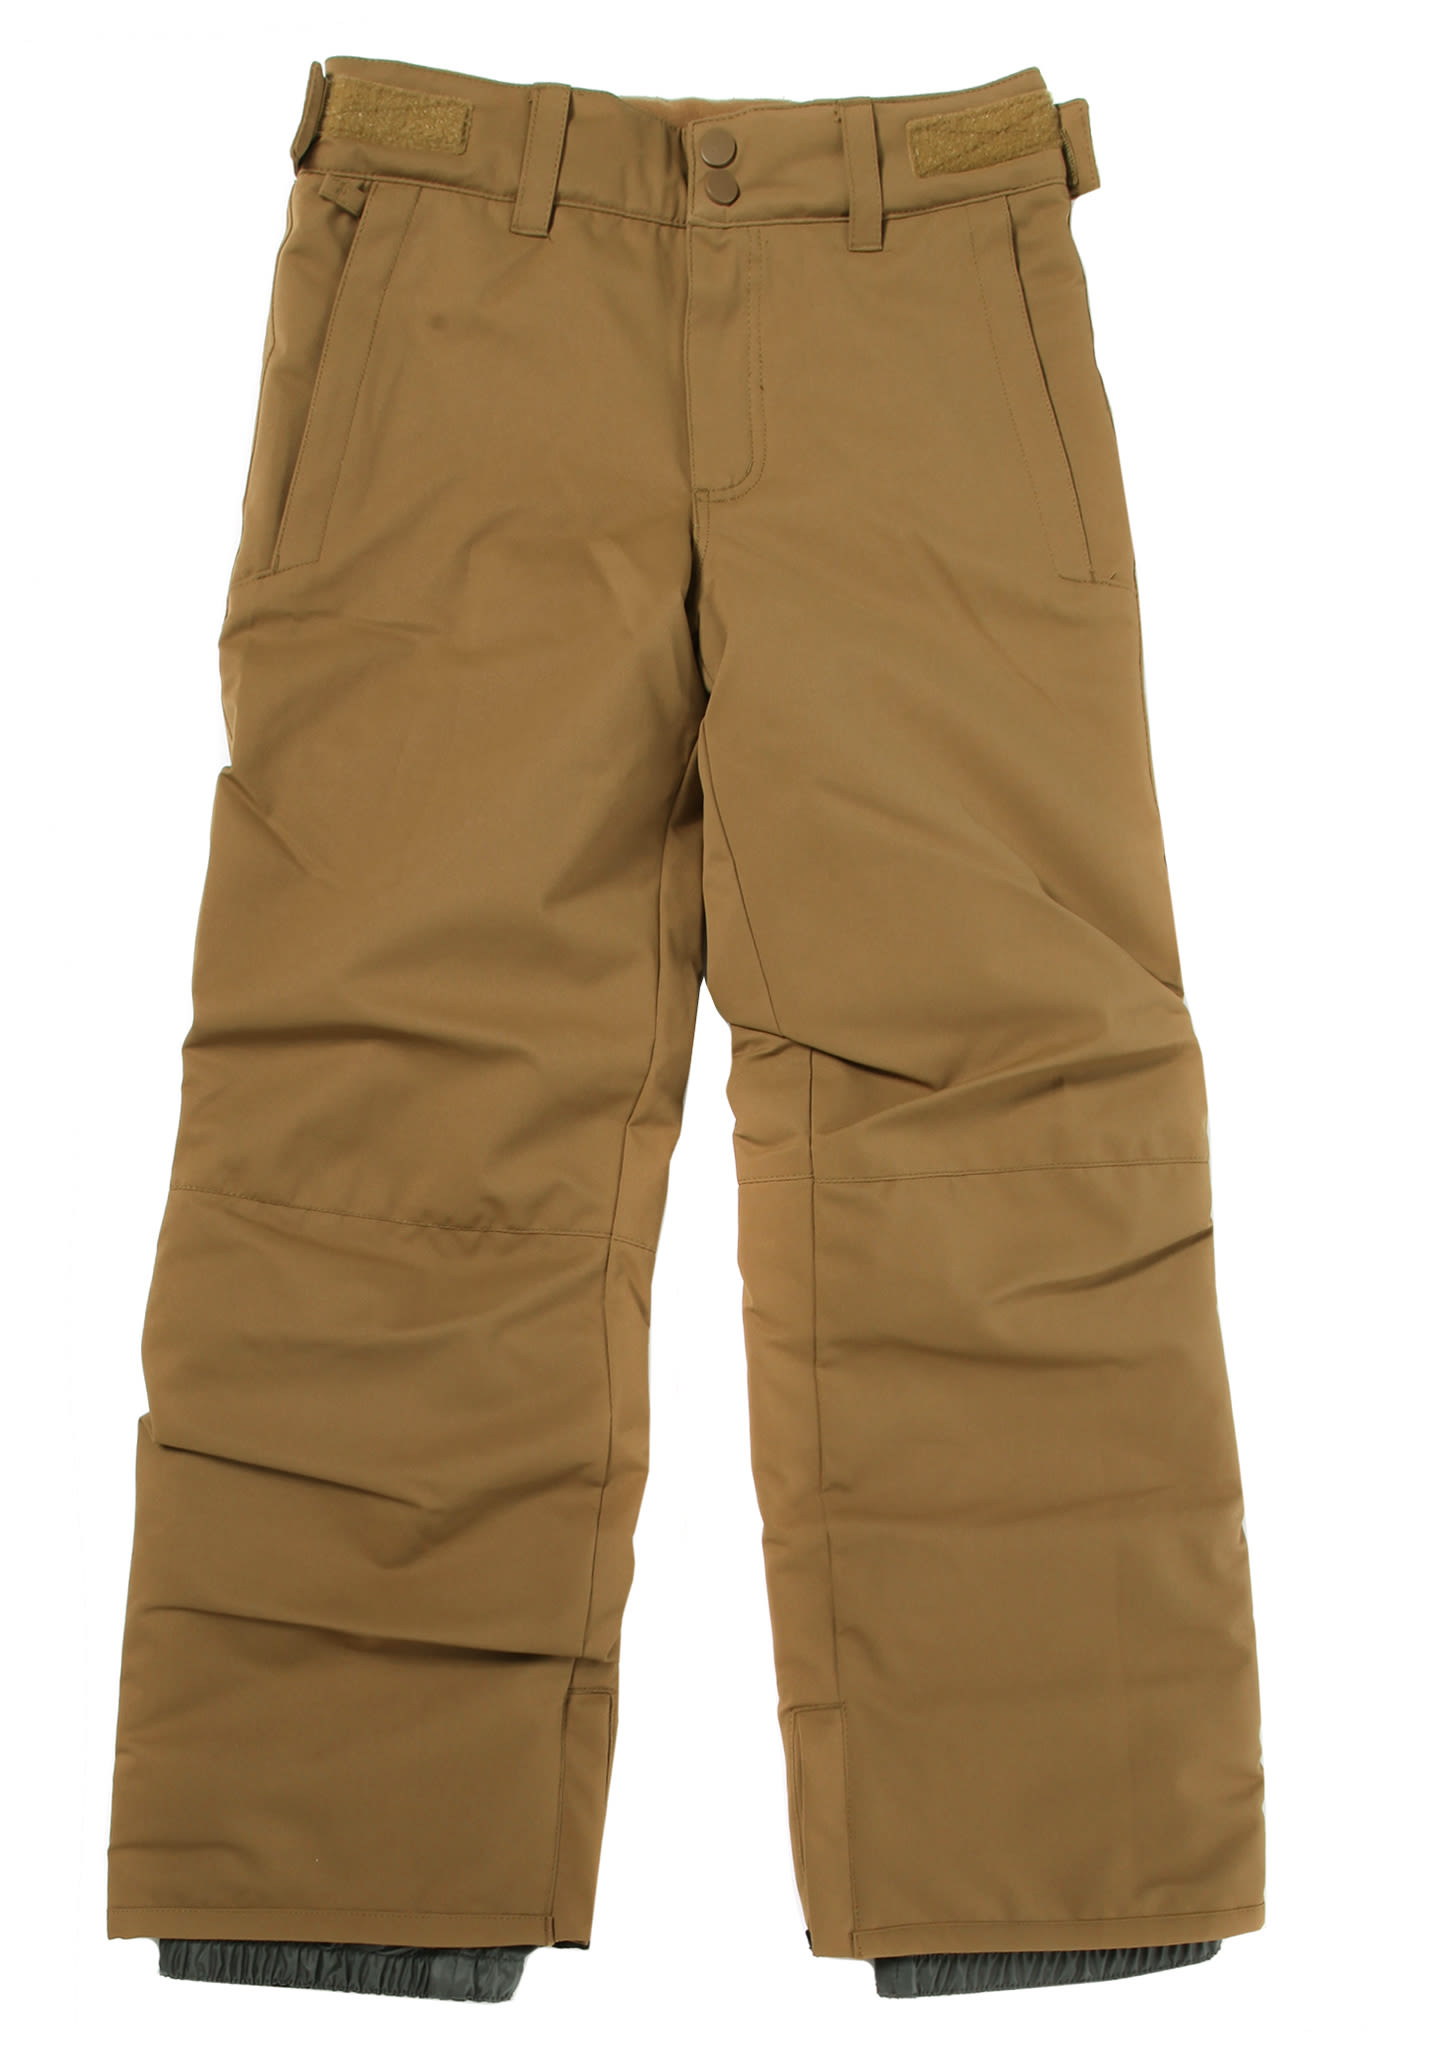 a7c8c138bfae BILLABONG Grom - Ski Pants for Kids Boys - Beige - Planet Sports